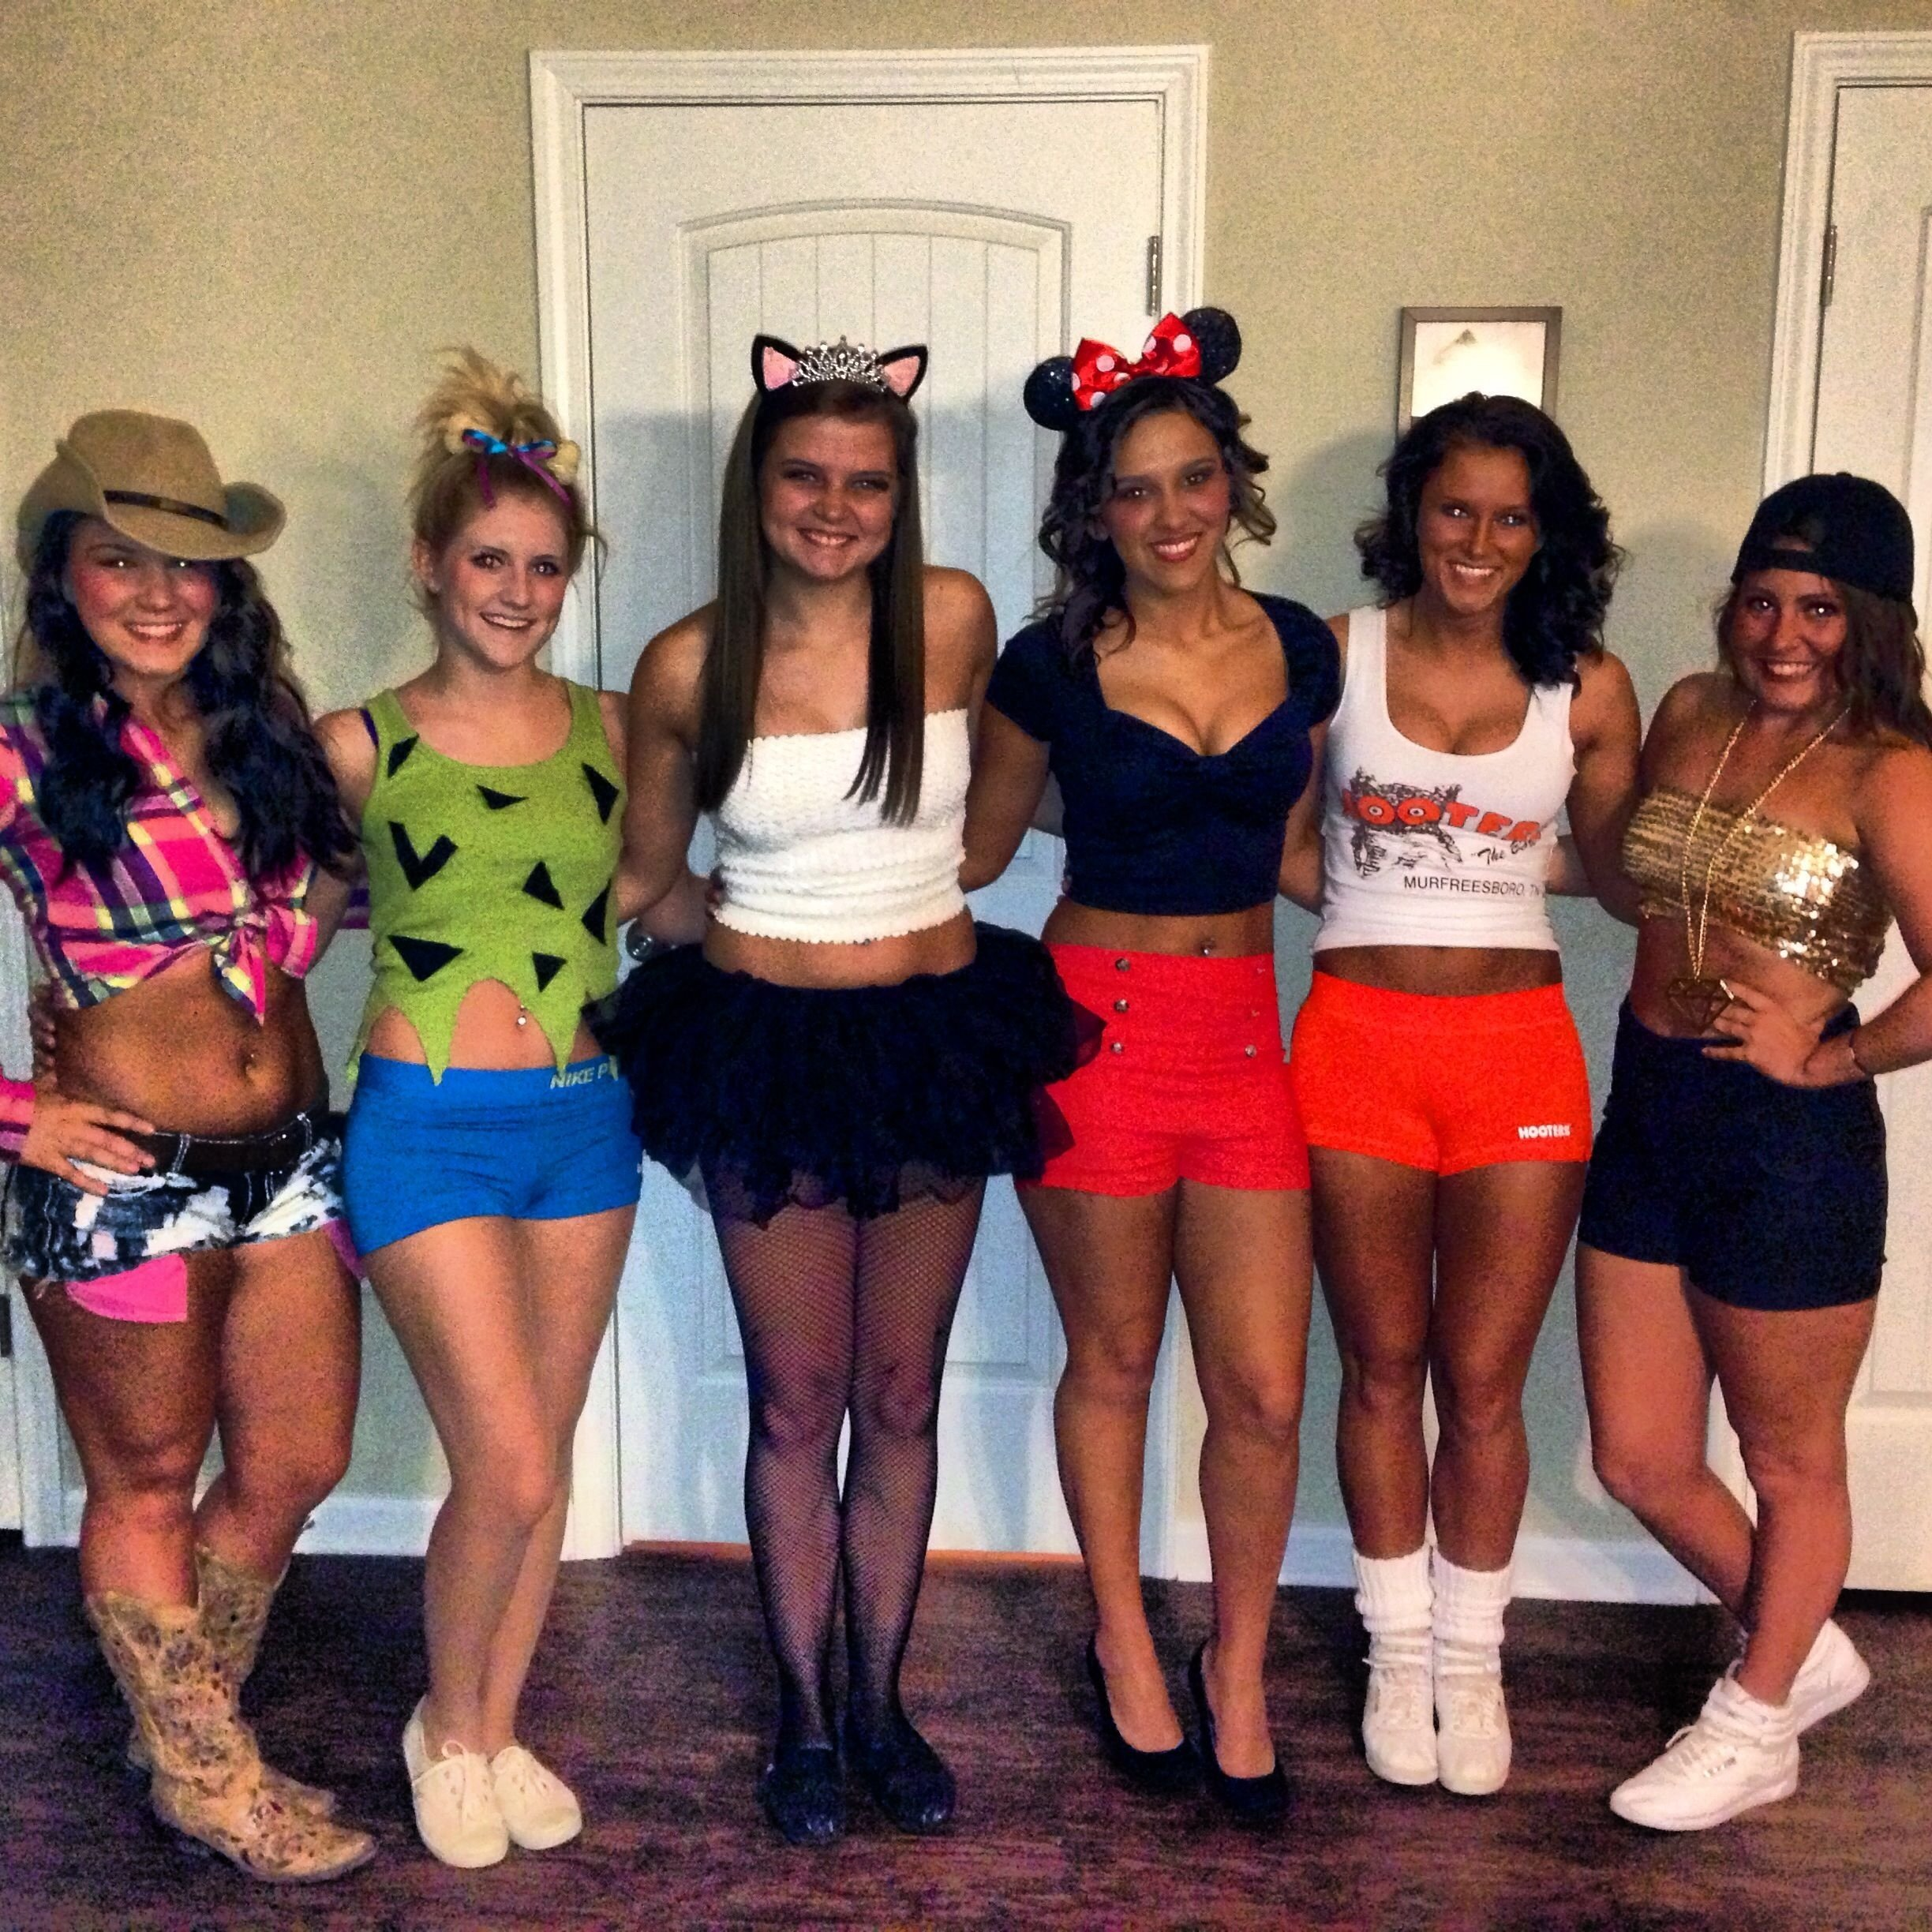 10 Attractive Halloween Costume Ideas For College Students diy halloween costume college hallllllloweeen time pinterest 5 2020